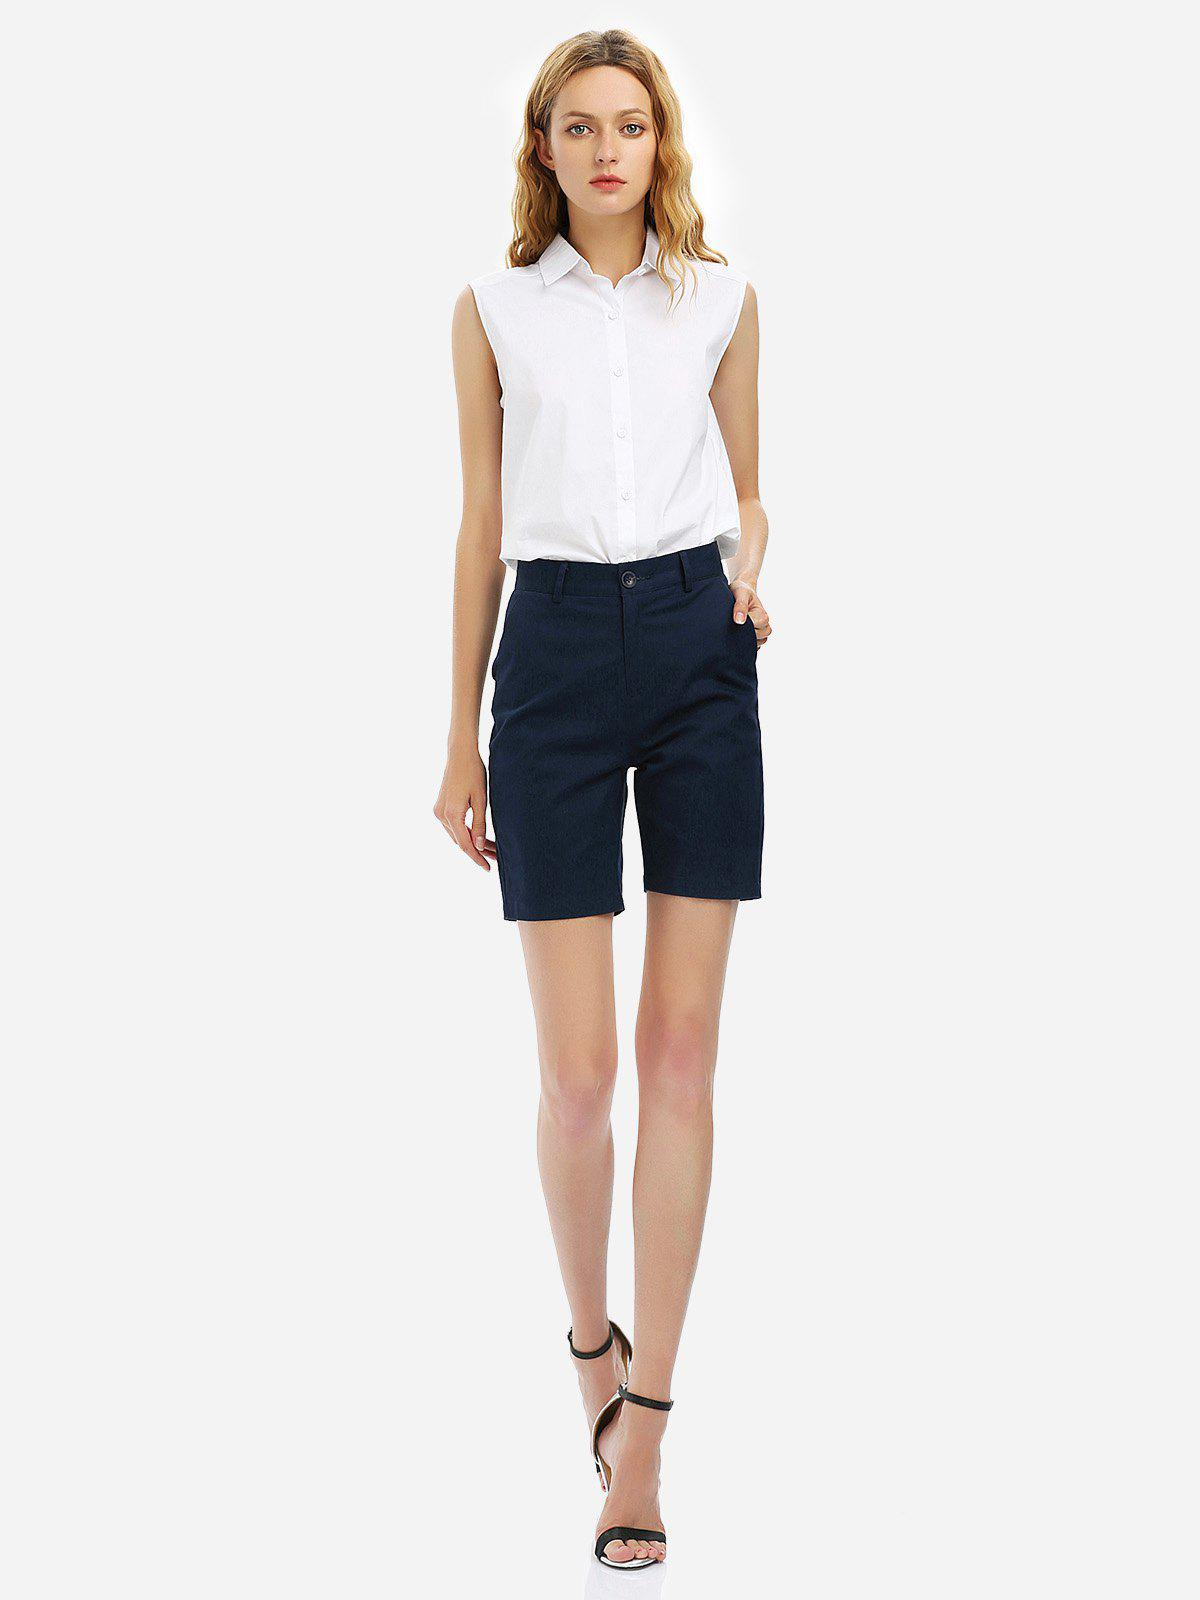 Cuffed Shorts - PURPLISH BLUE L